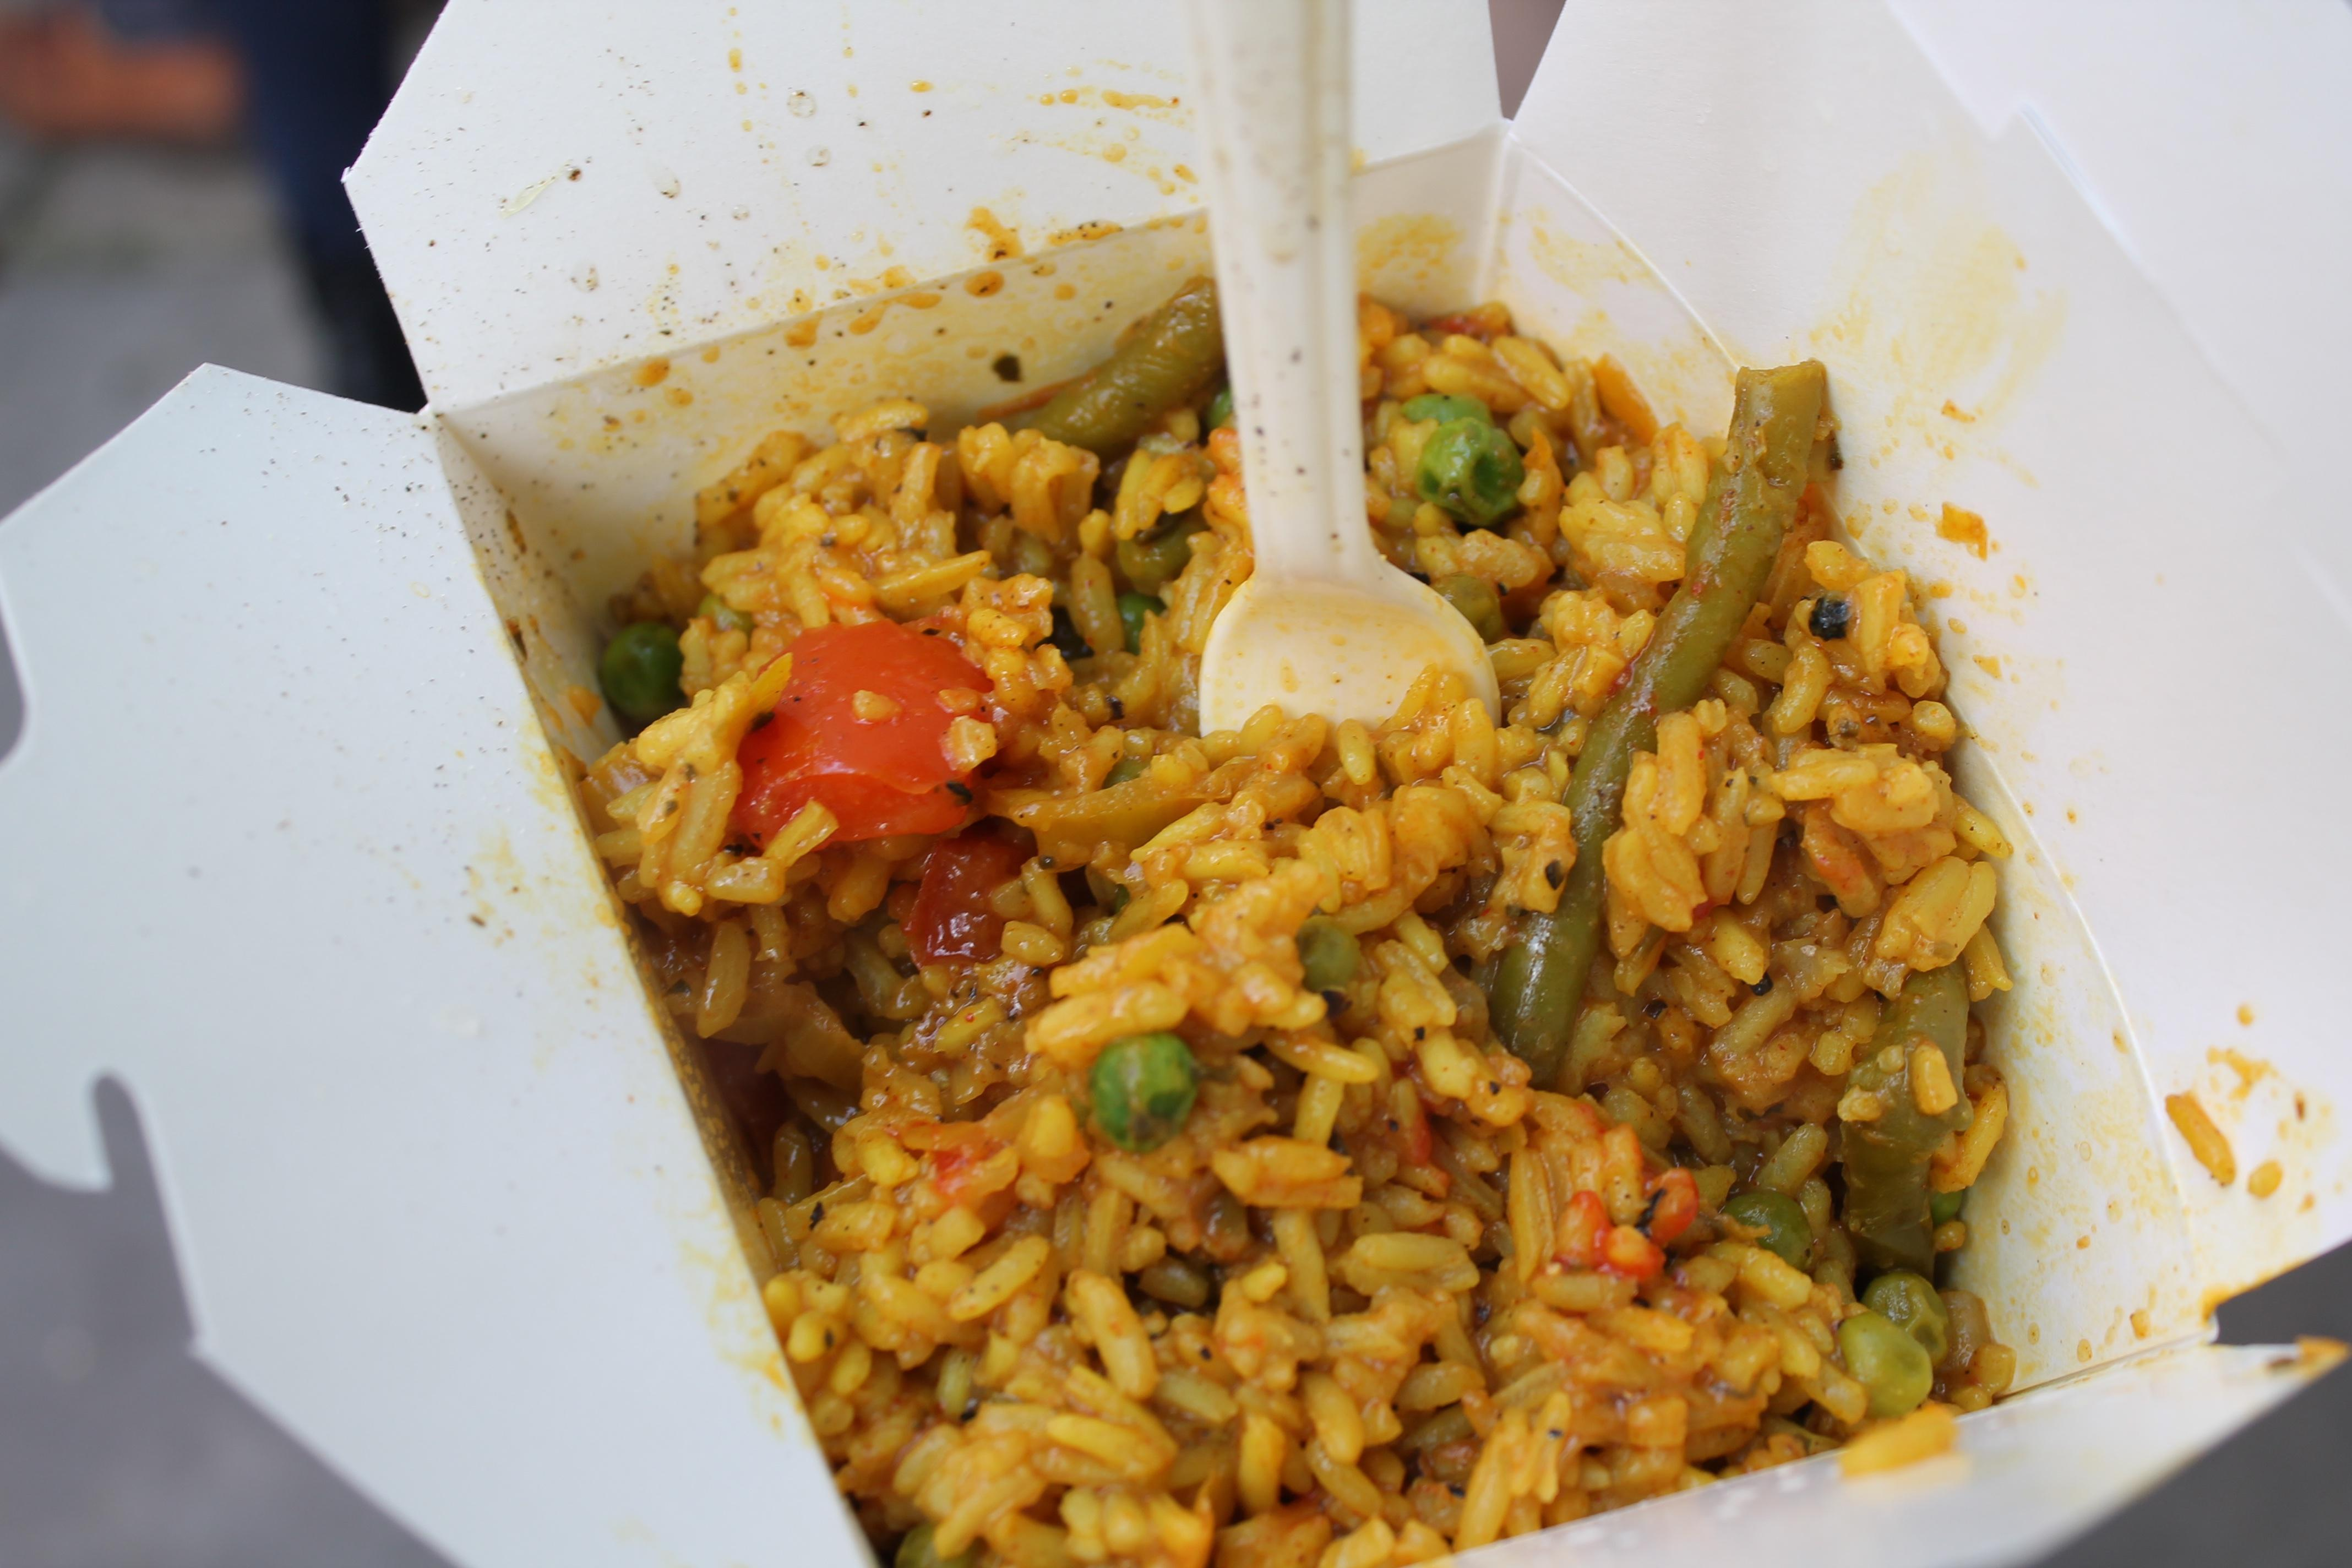 I had this yummy veggie paella for a fiver – it was also vegan AND gluten free, so even those with a more restricted diet have no reason to not be able to enjoy this deliciousness